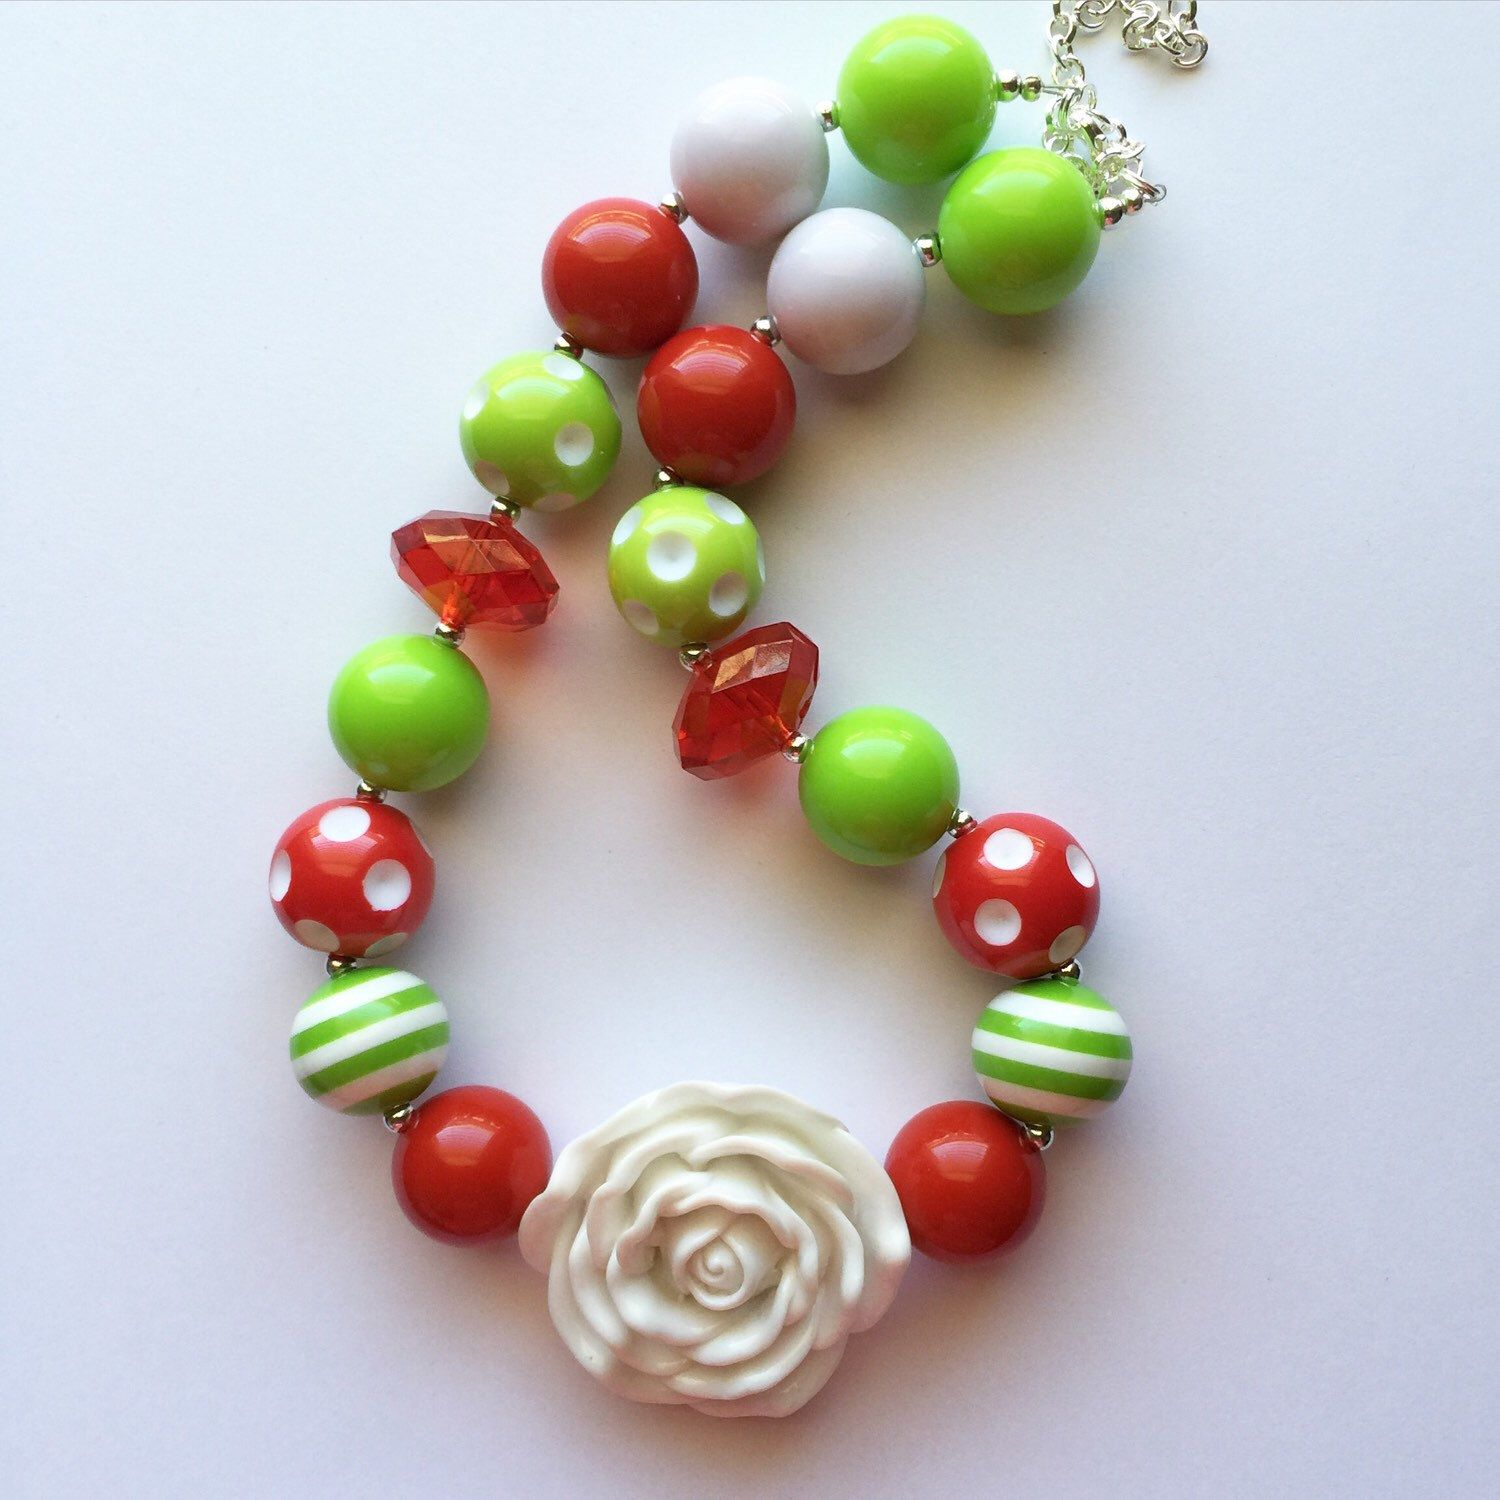 Red And Green Christmas Chunky Bubblegum Necklace by Baublesandbowstoo on Etsy https://www.etsy.com/listing/251911276/red-and-green-christmas-chunky-bubblegum